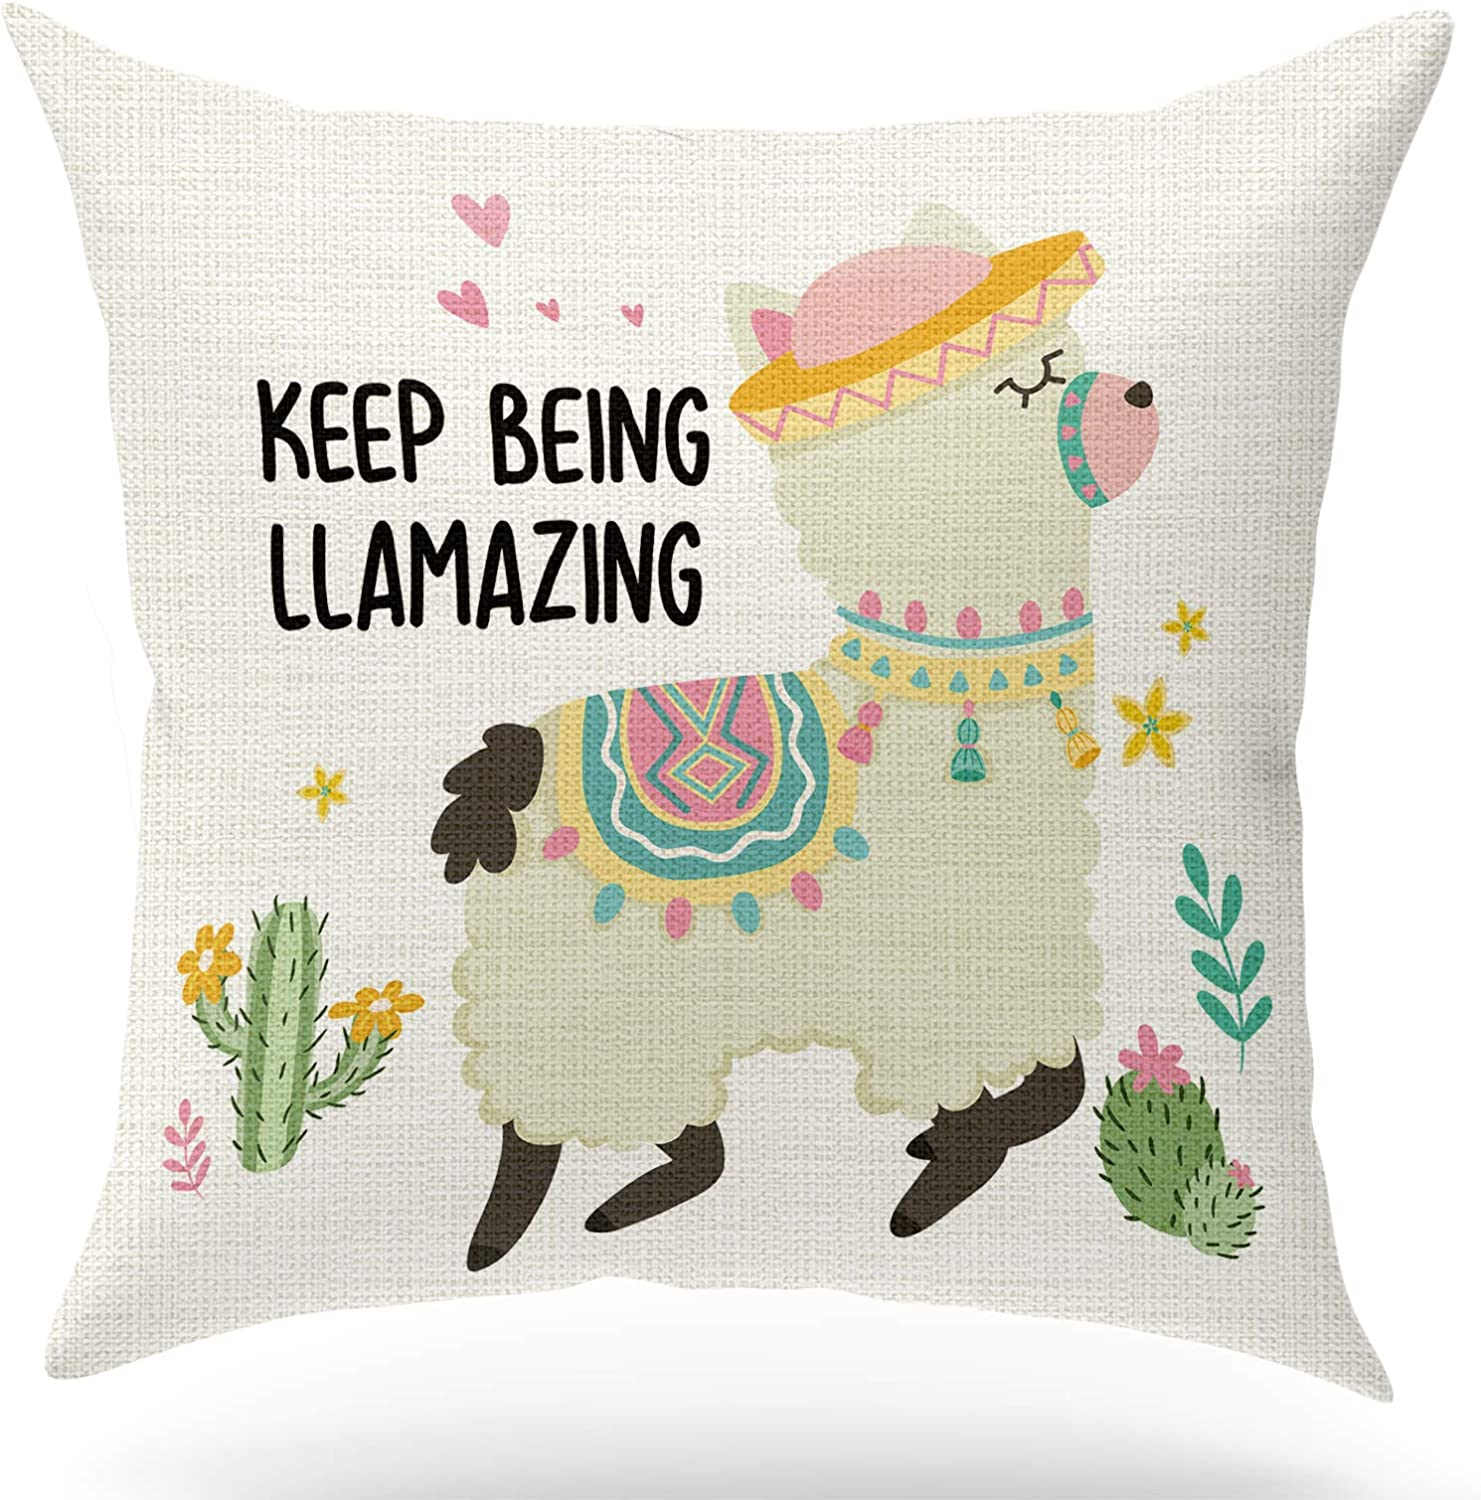 KongMoTree Inspirational Gifts Llama Gifts Llama Decorative Pillow Covers,Keep Being llamazing, Linen Pillow Case,Cute Room Decor,Home Decor Farmhouse D?or Throw Pillow Cover 18x18 inch